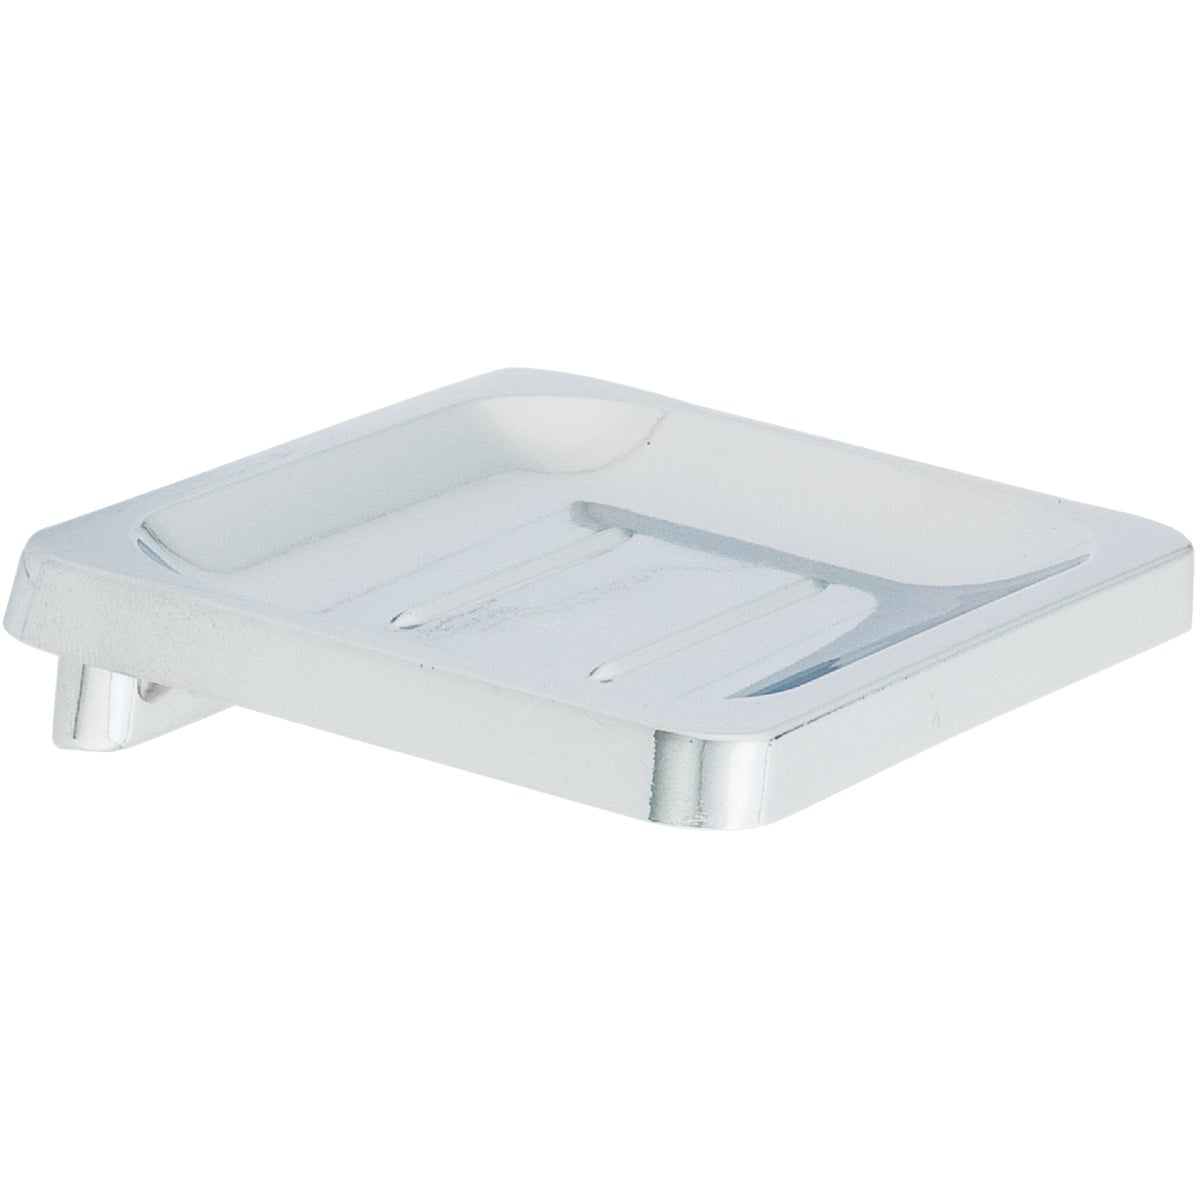 CHROME SOAP DISH - 408767 by Do it Best